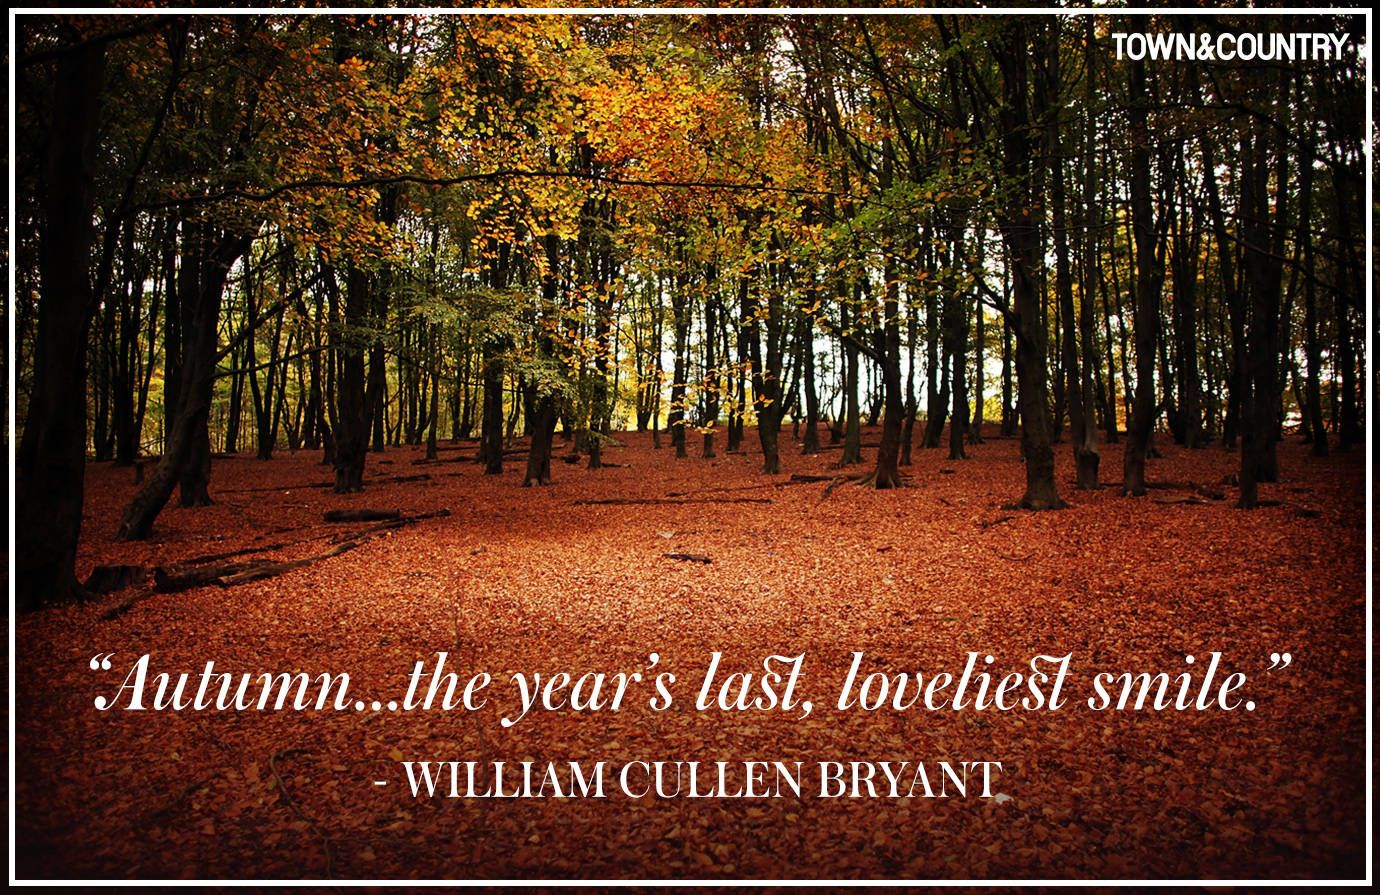 Fall Quotes About Love Delectable 12 Inspiring Fall Quotes  Best Quotes & Sayings About Autumn